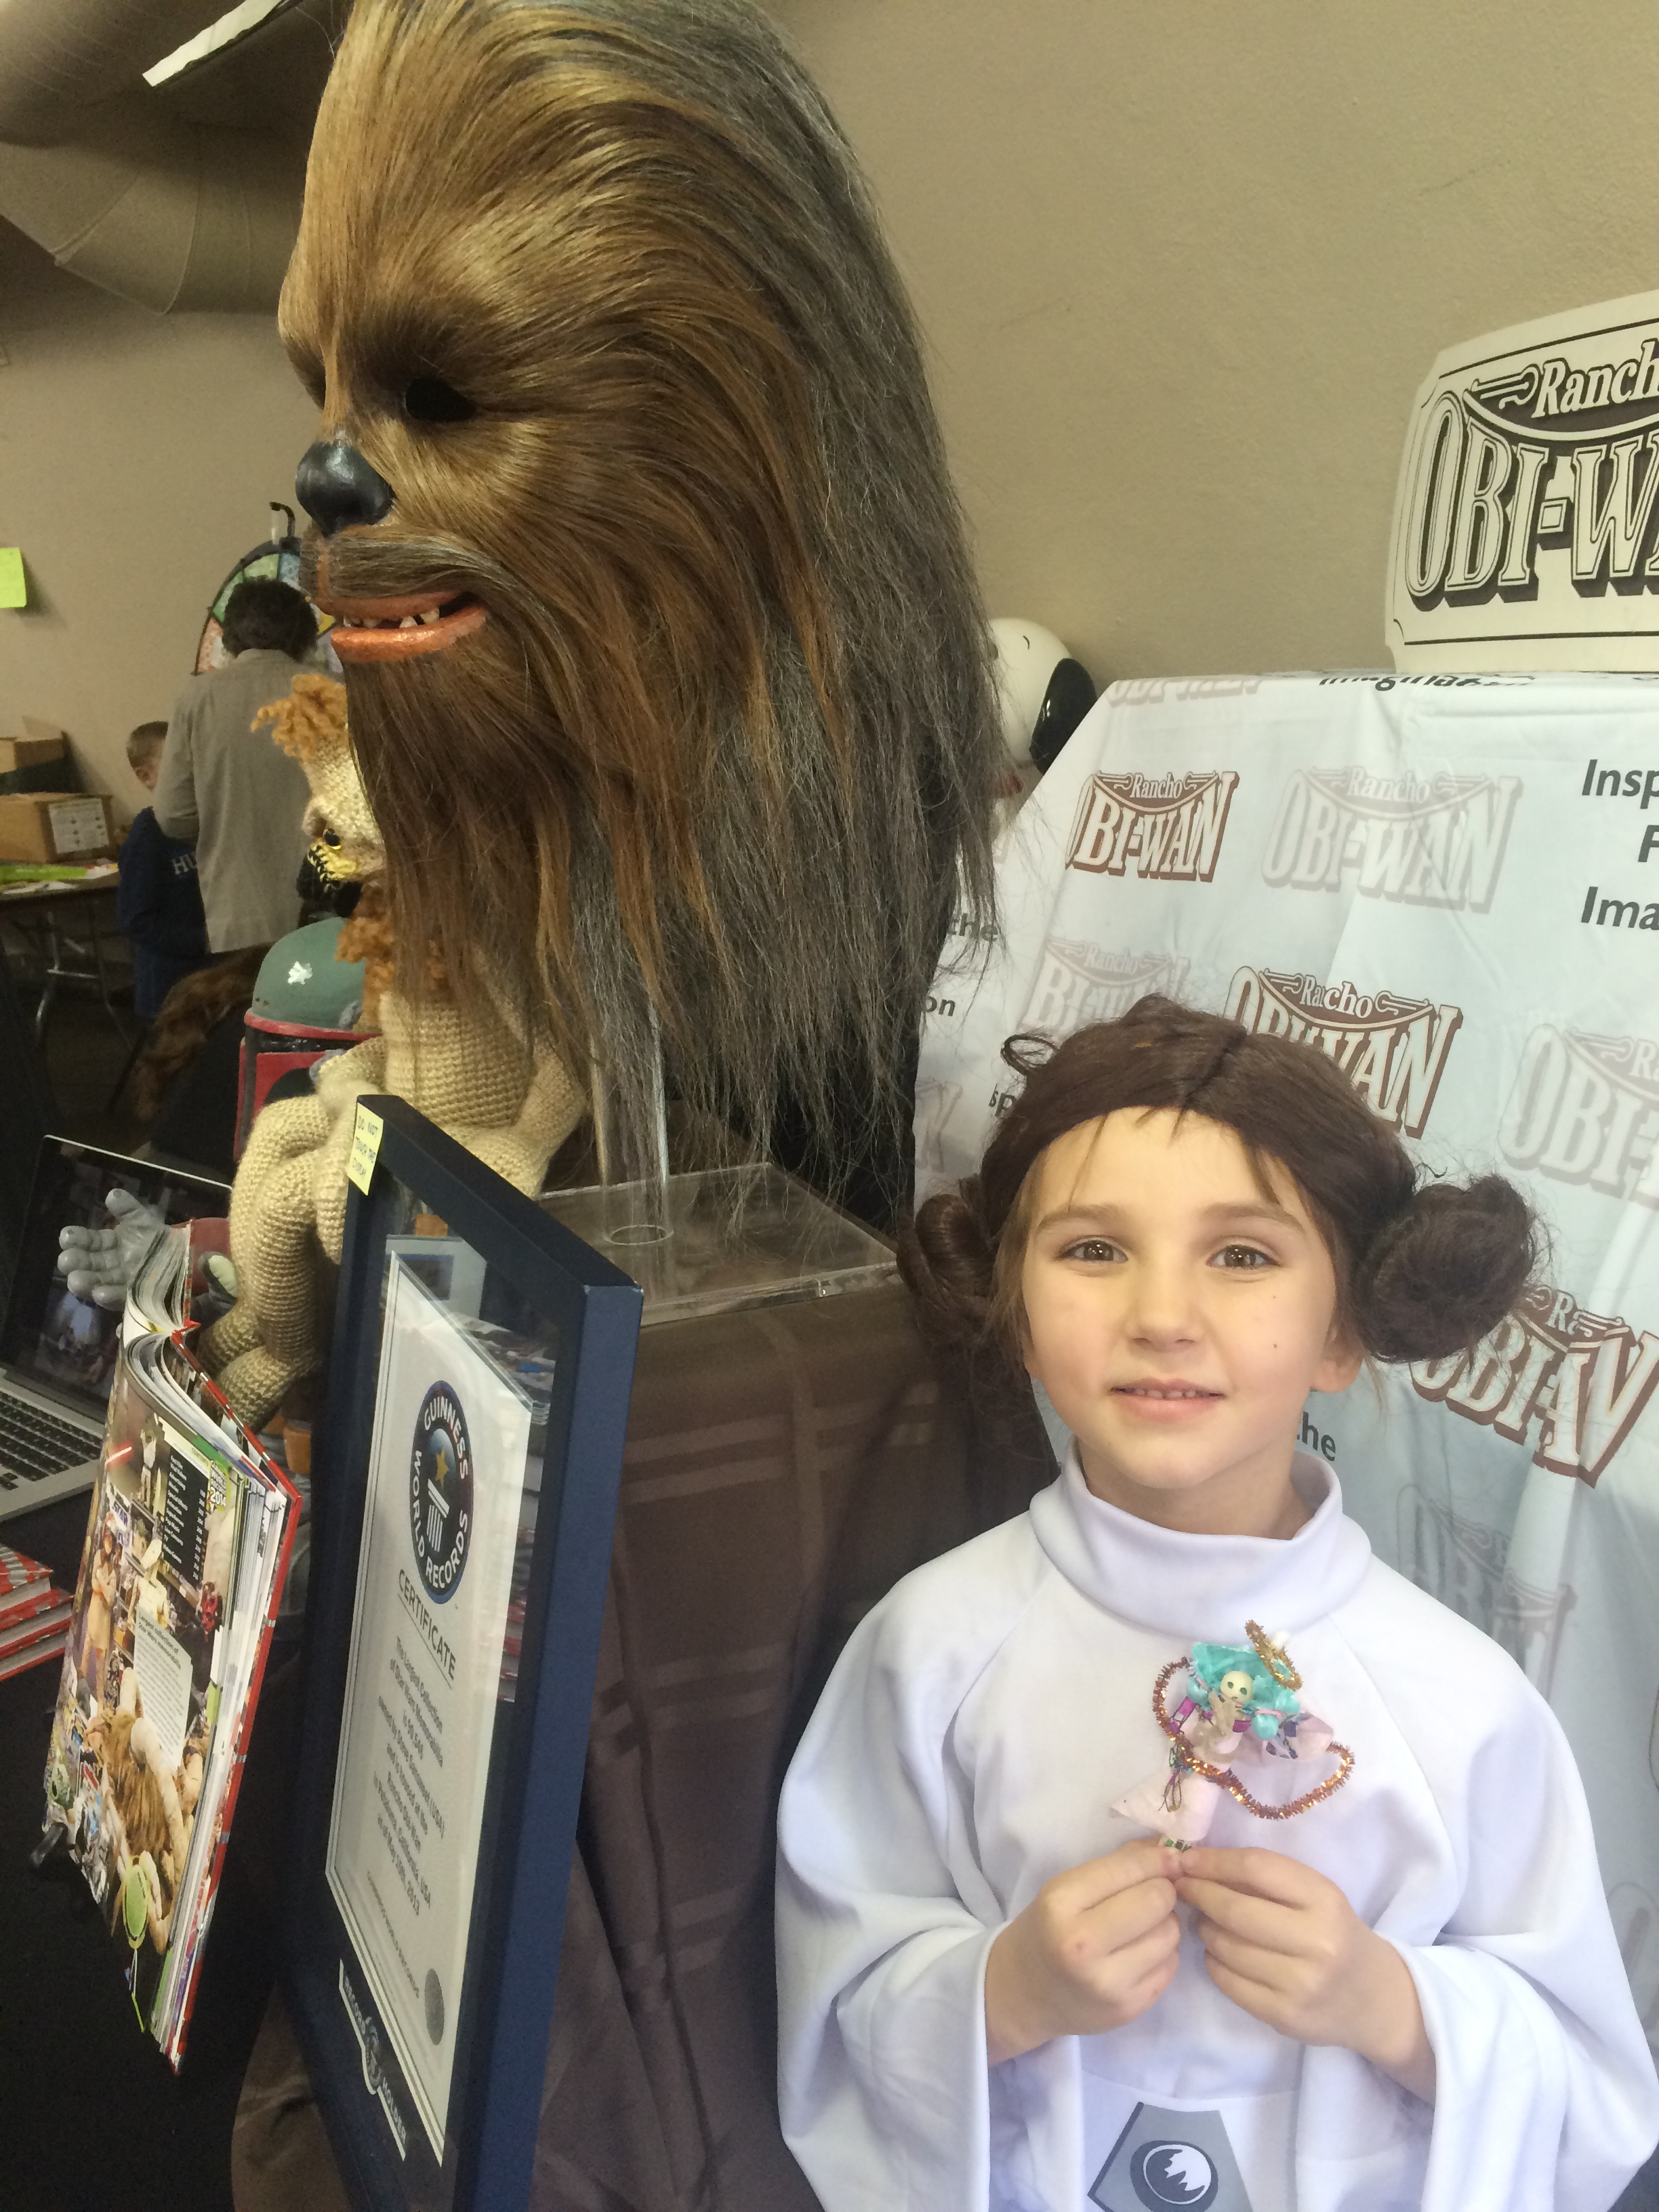 Princess Leia and her Wookie